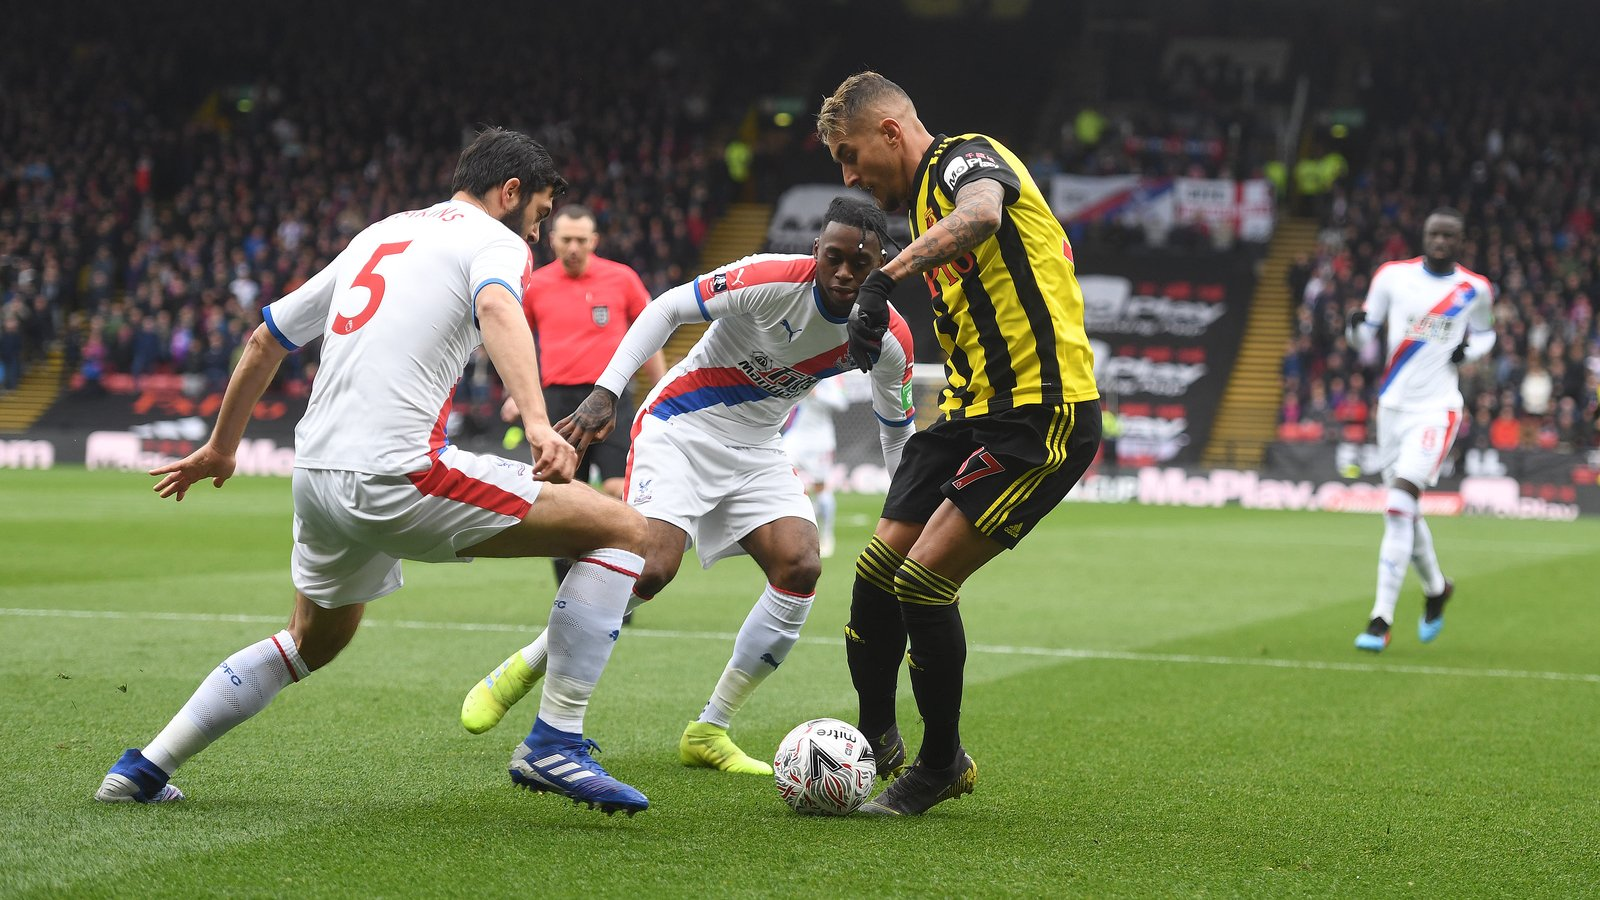 Watford FC 2-1 Crystal Palace - FA Cup - Quarter Final - 16 March 2-10